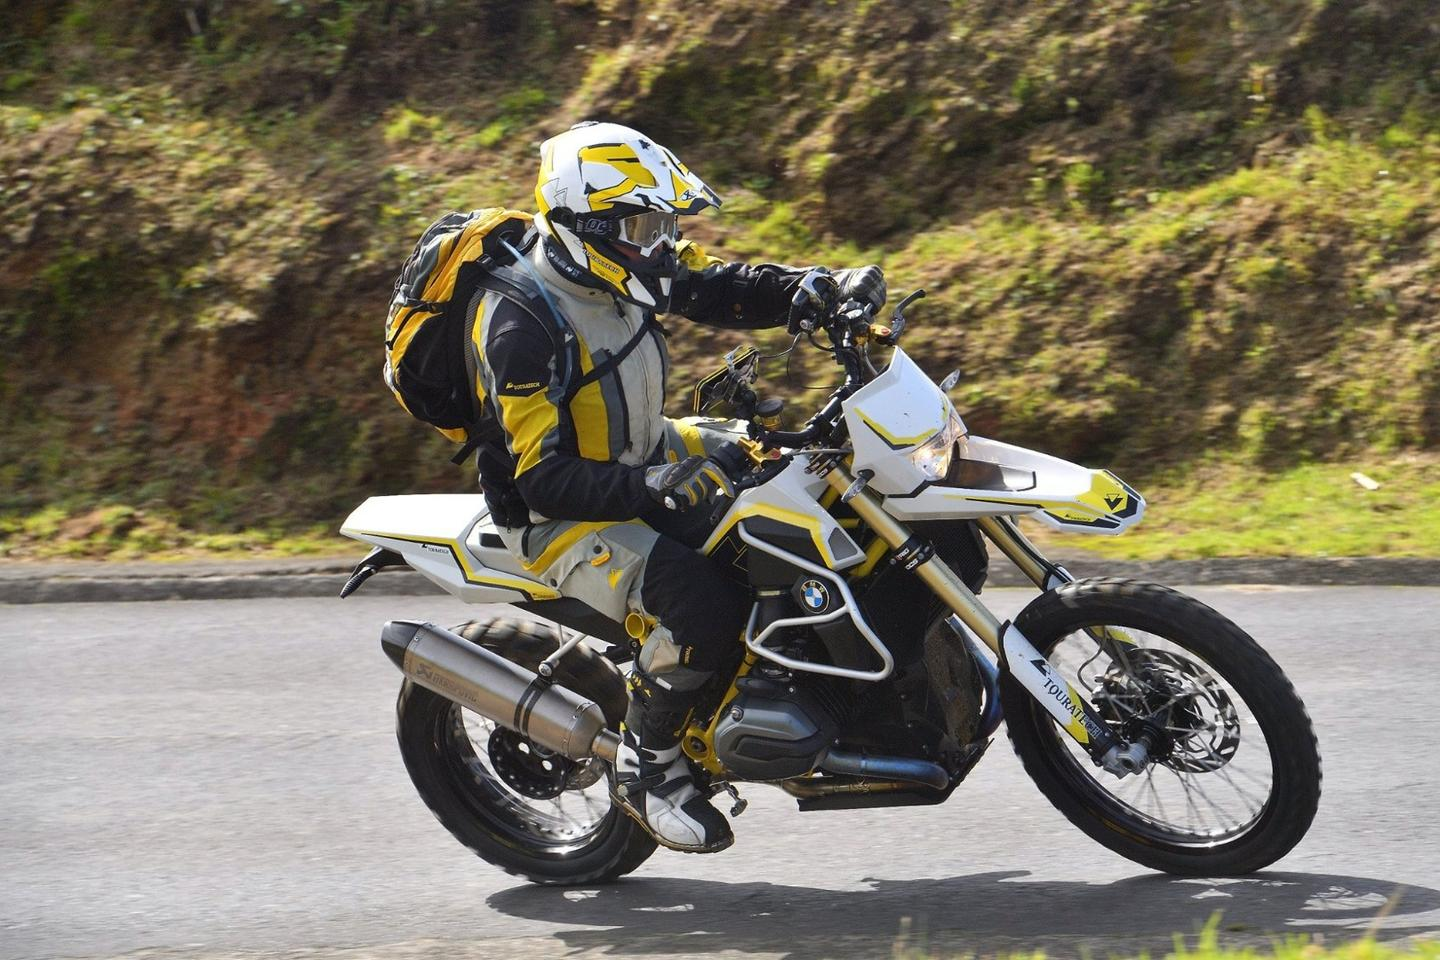 The Touratech R1200GS Rambler is a fully functional prototype that many adventure riders would dream of owning